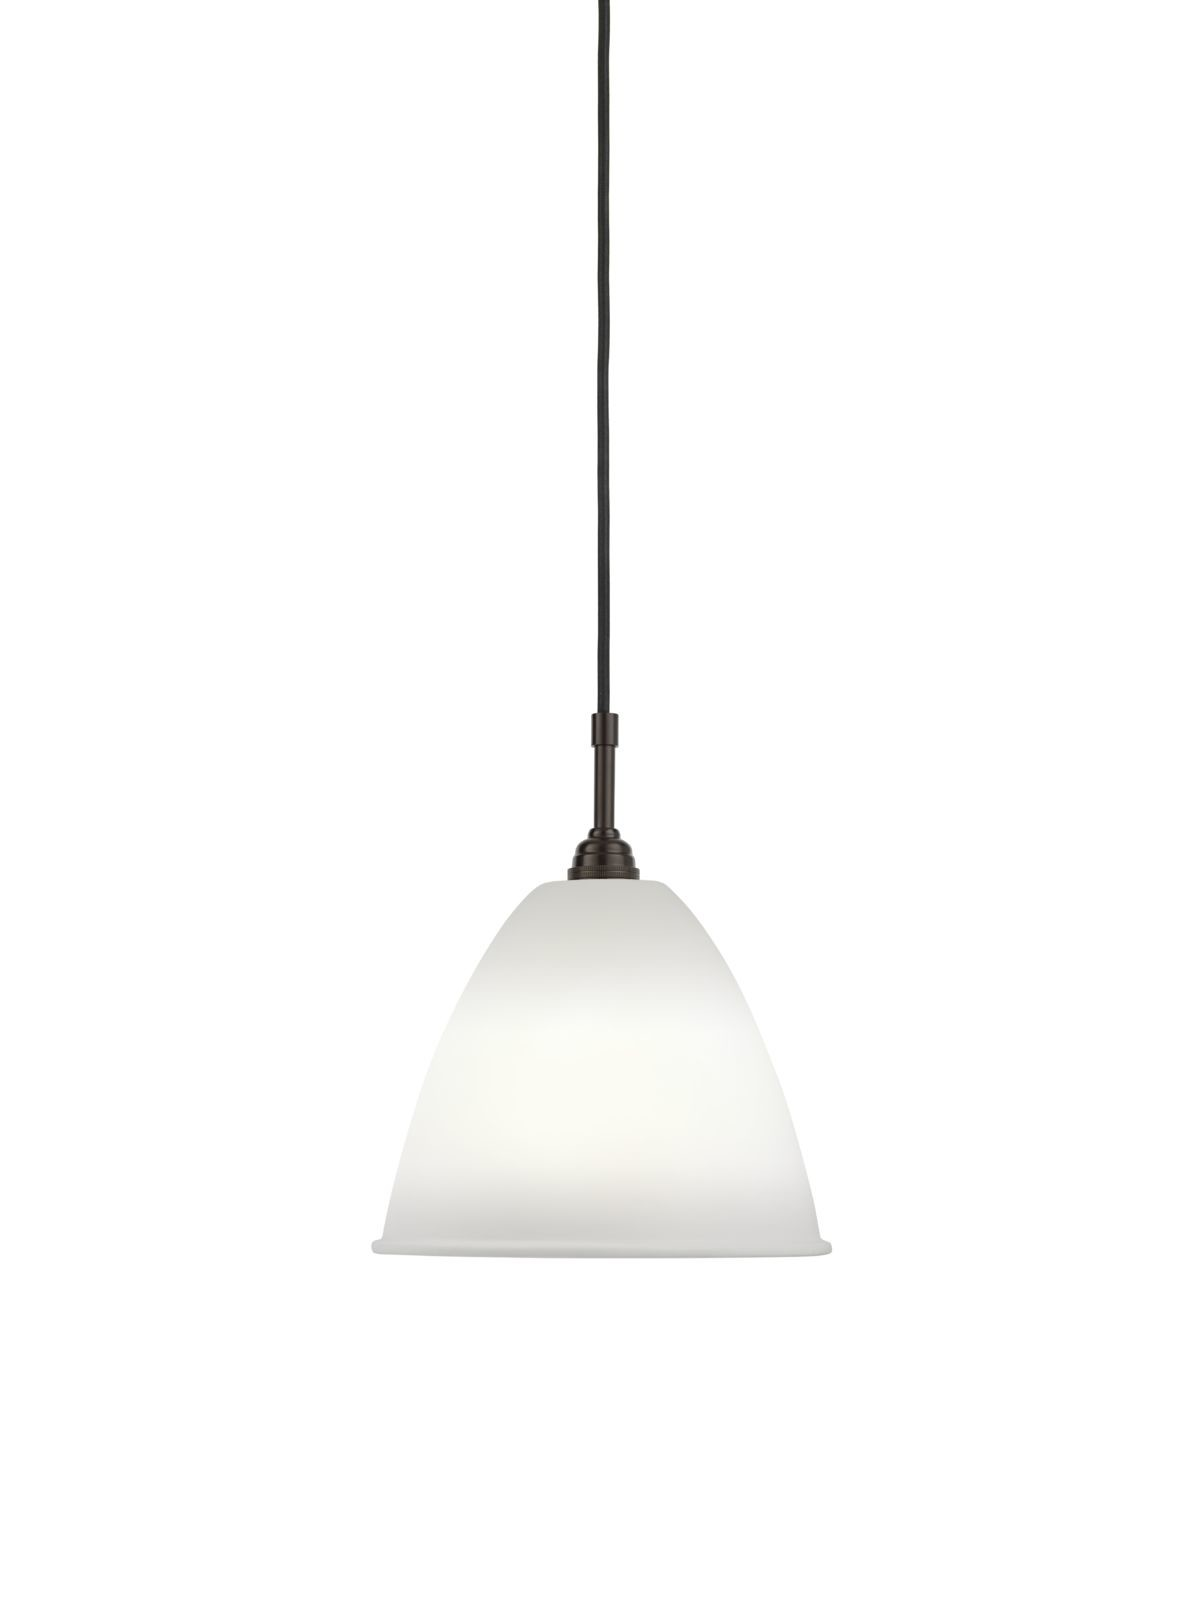 Bestlite BL9 Medium Pendant Lamp Bone China / Black Brass